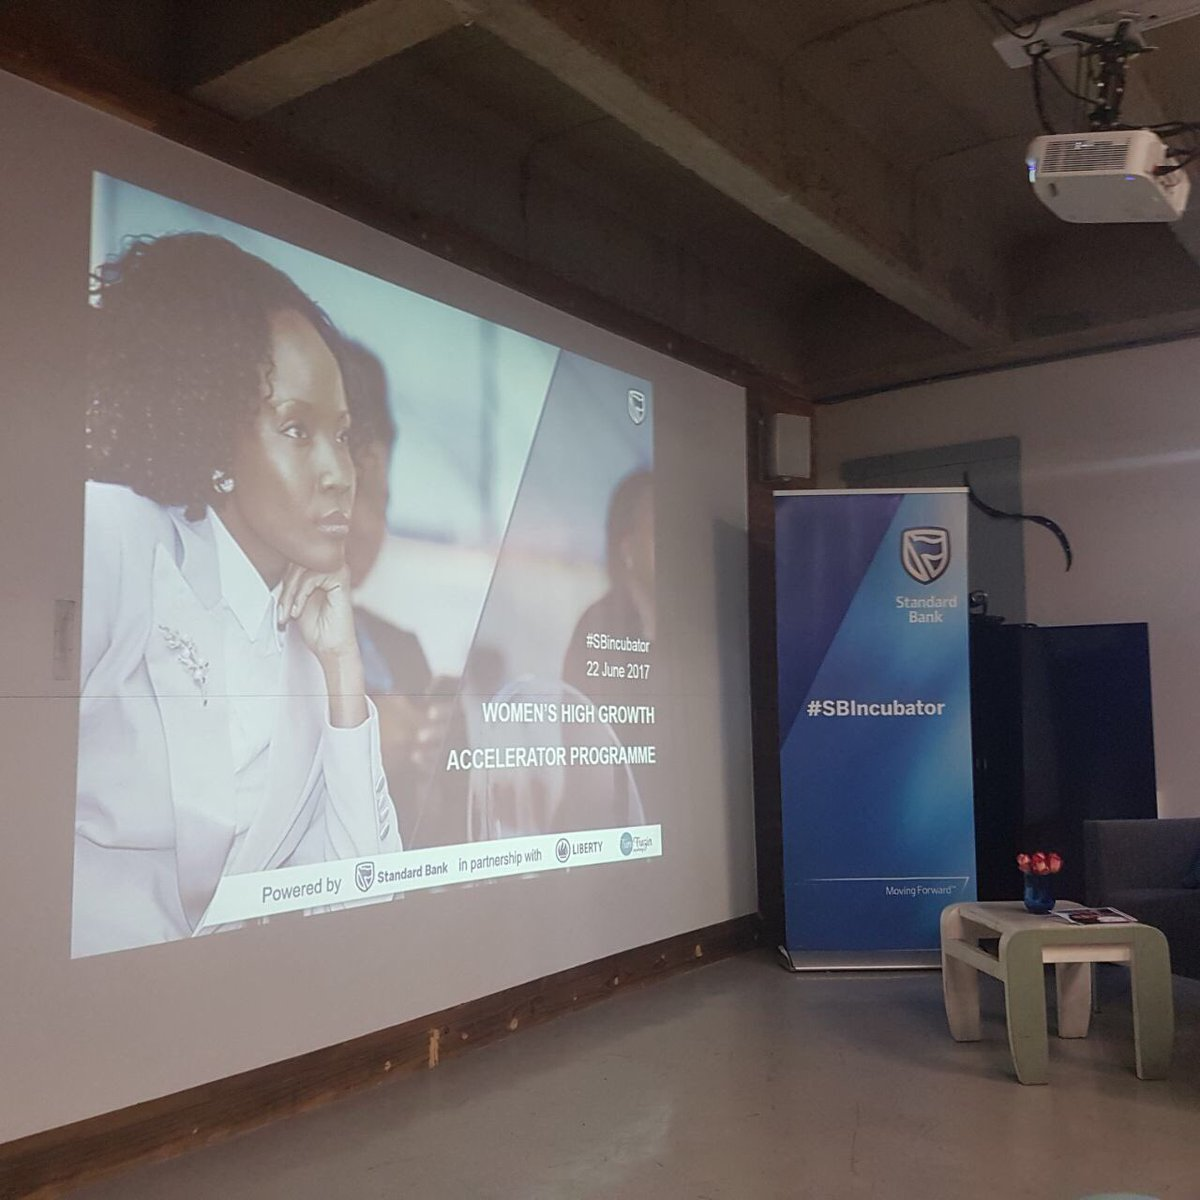 We&#39;re at the #SBIncubator this morning, kicking off the Women&#39;s High Growth Accelerator Programme. #EntrepreneurialSpirit <br>http://pic.twitter.com/8X6Wf8KKLz